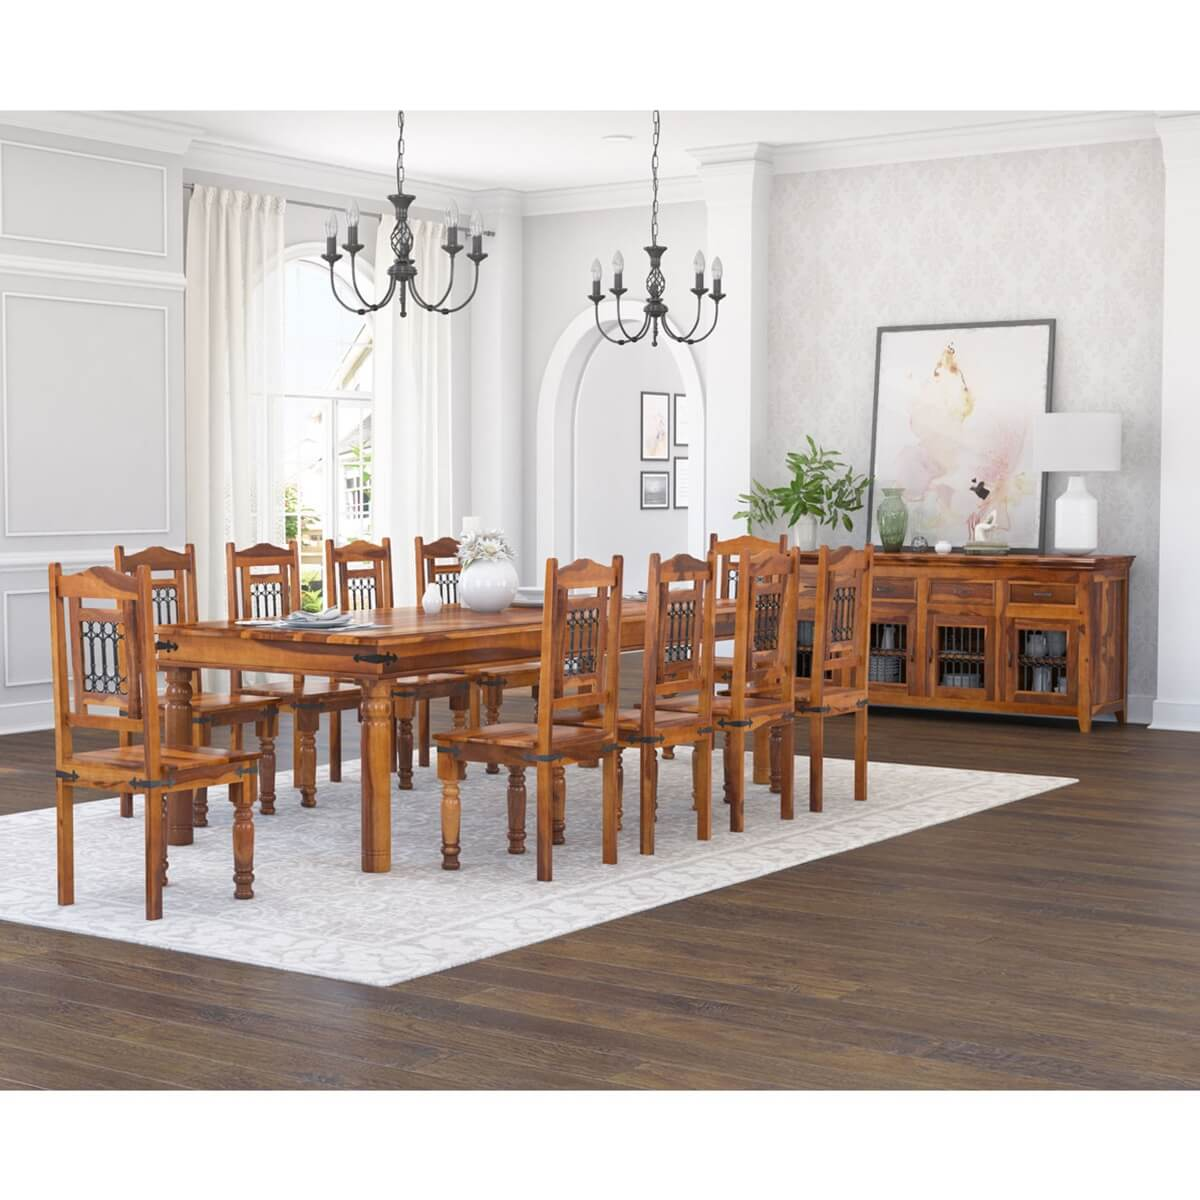 San Francisco Handcrafted Solid Wood 13 Piece Dining Room Set